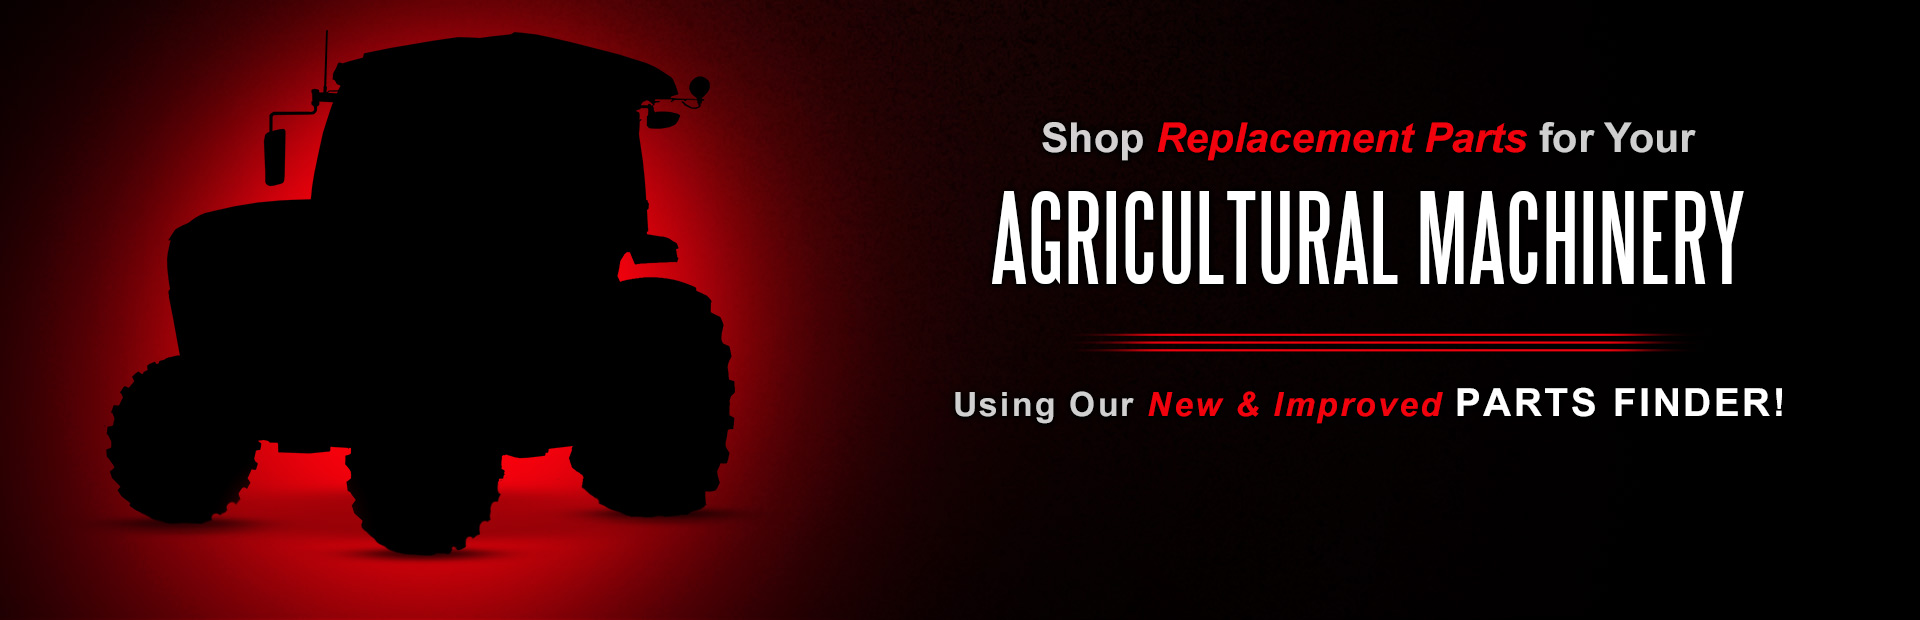 Shop replacement parts for your agricultural machinery using our new and improved Parts Finder!